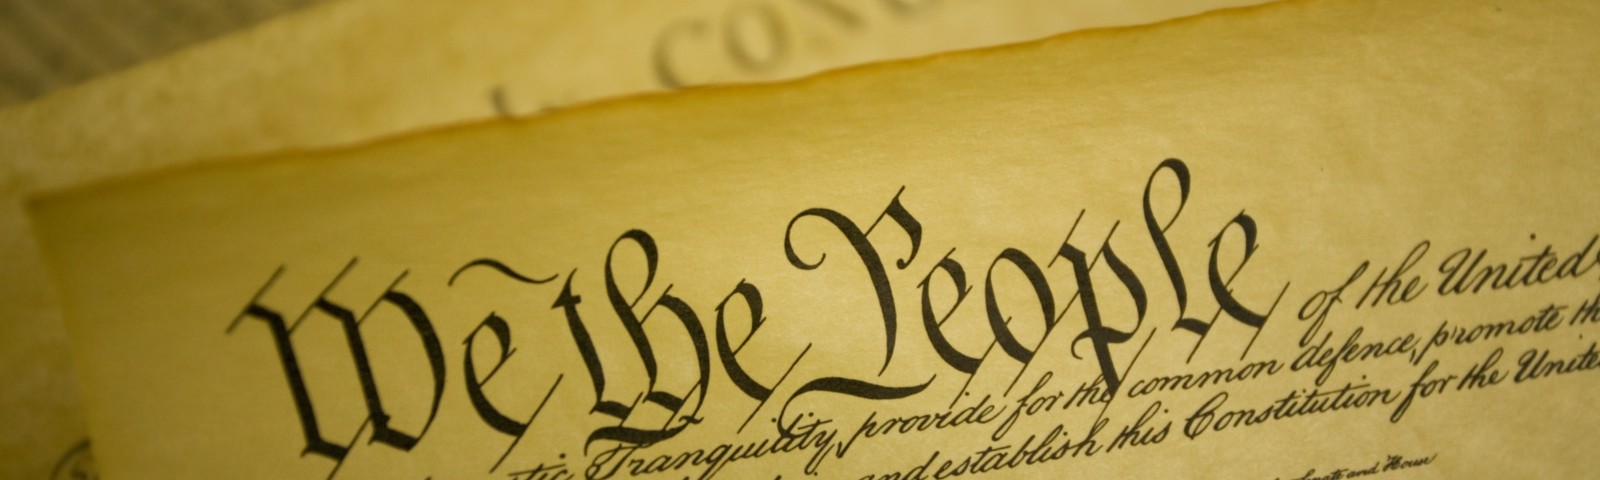 """The Constitution of the United States with """"We the People"""" written in a large, ornate font."""